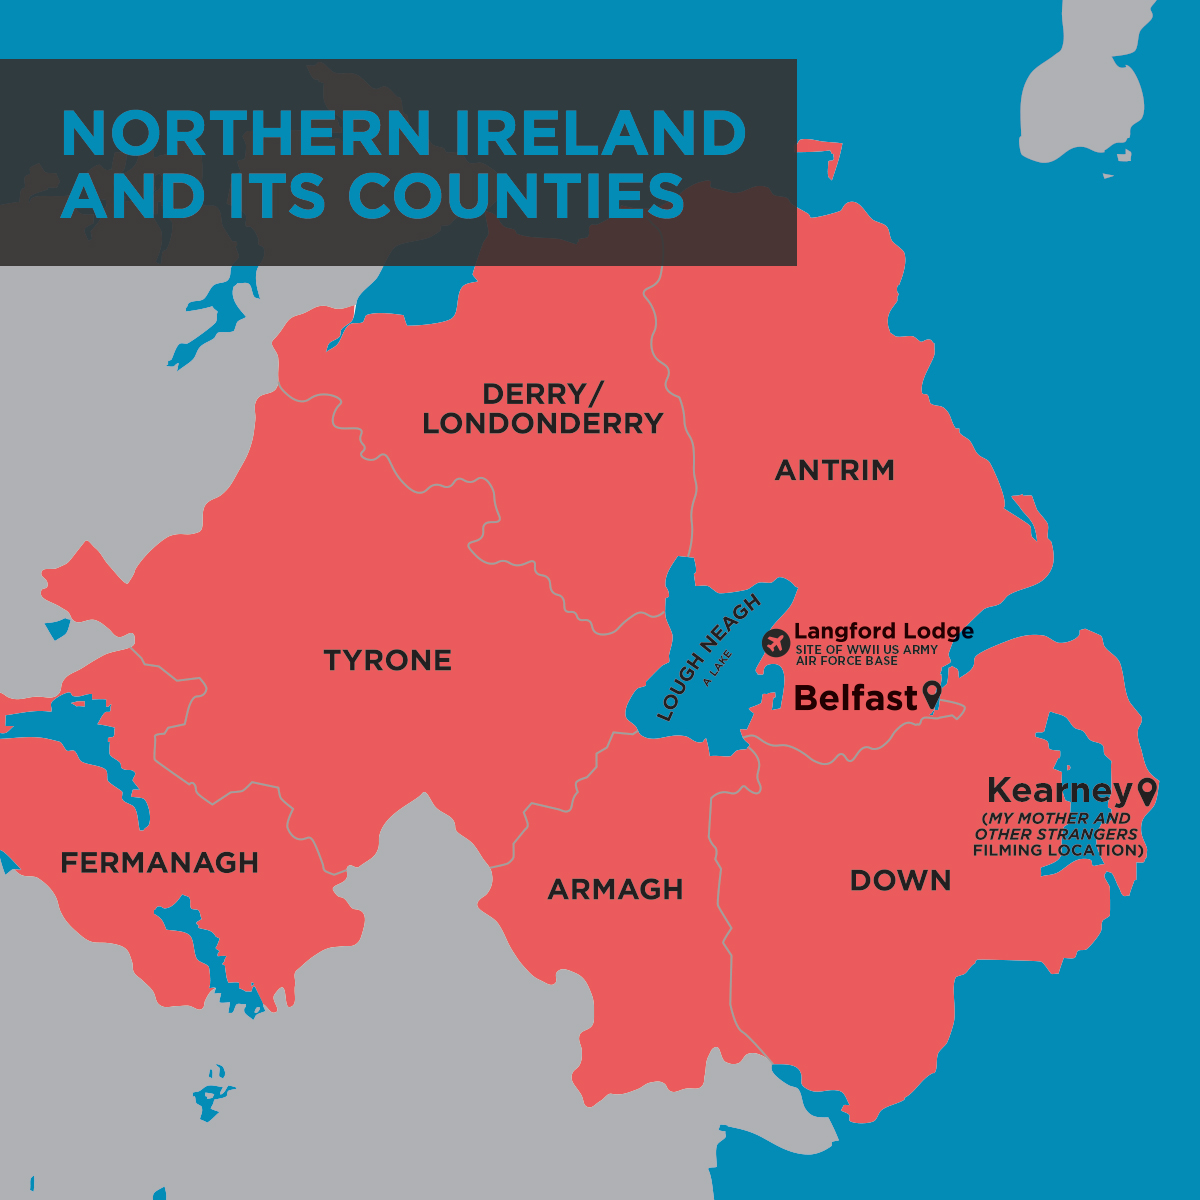 My mother and other strangers the pbs series explainer the republic of ireland became defacto independent from the united kingdom in 1921 and was neutral during world war ii in 1939 northern island gumiabroncs Image collections